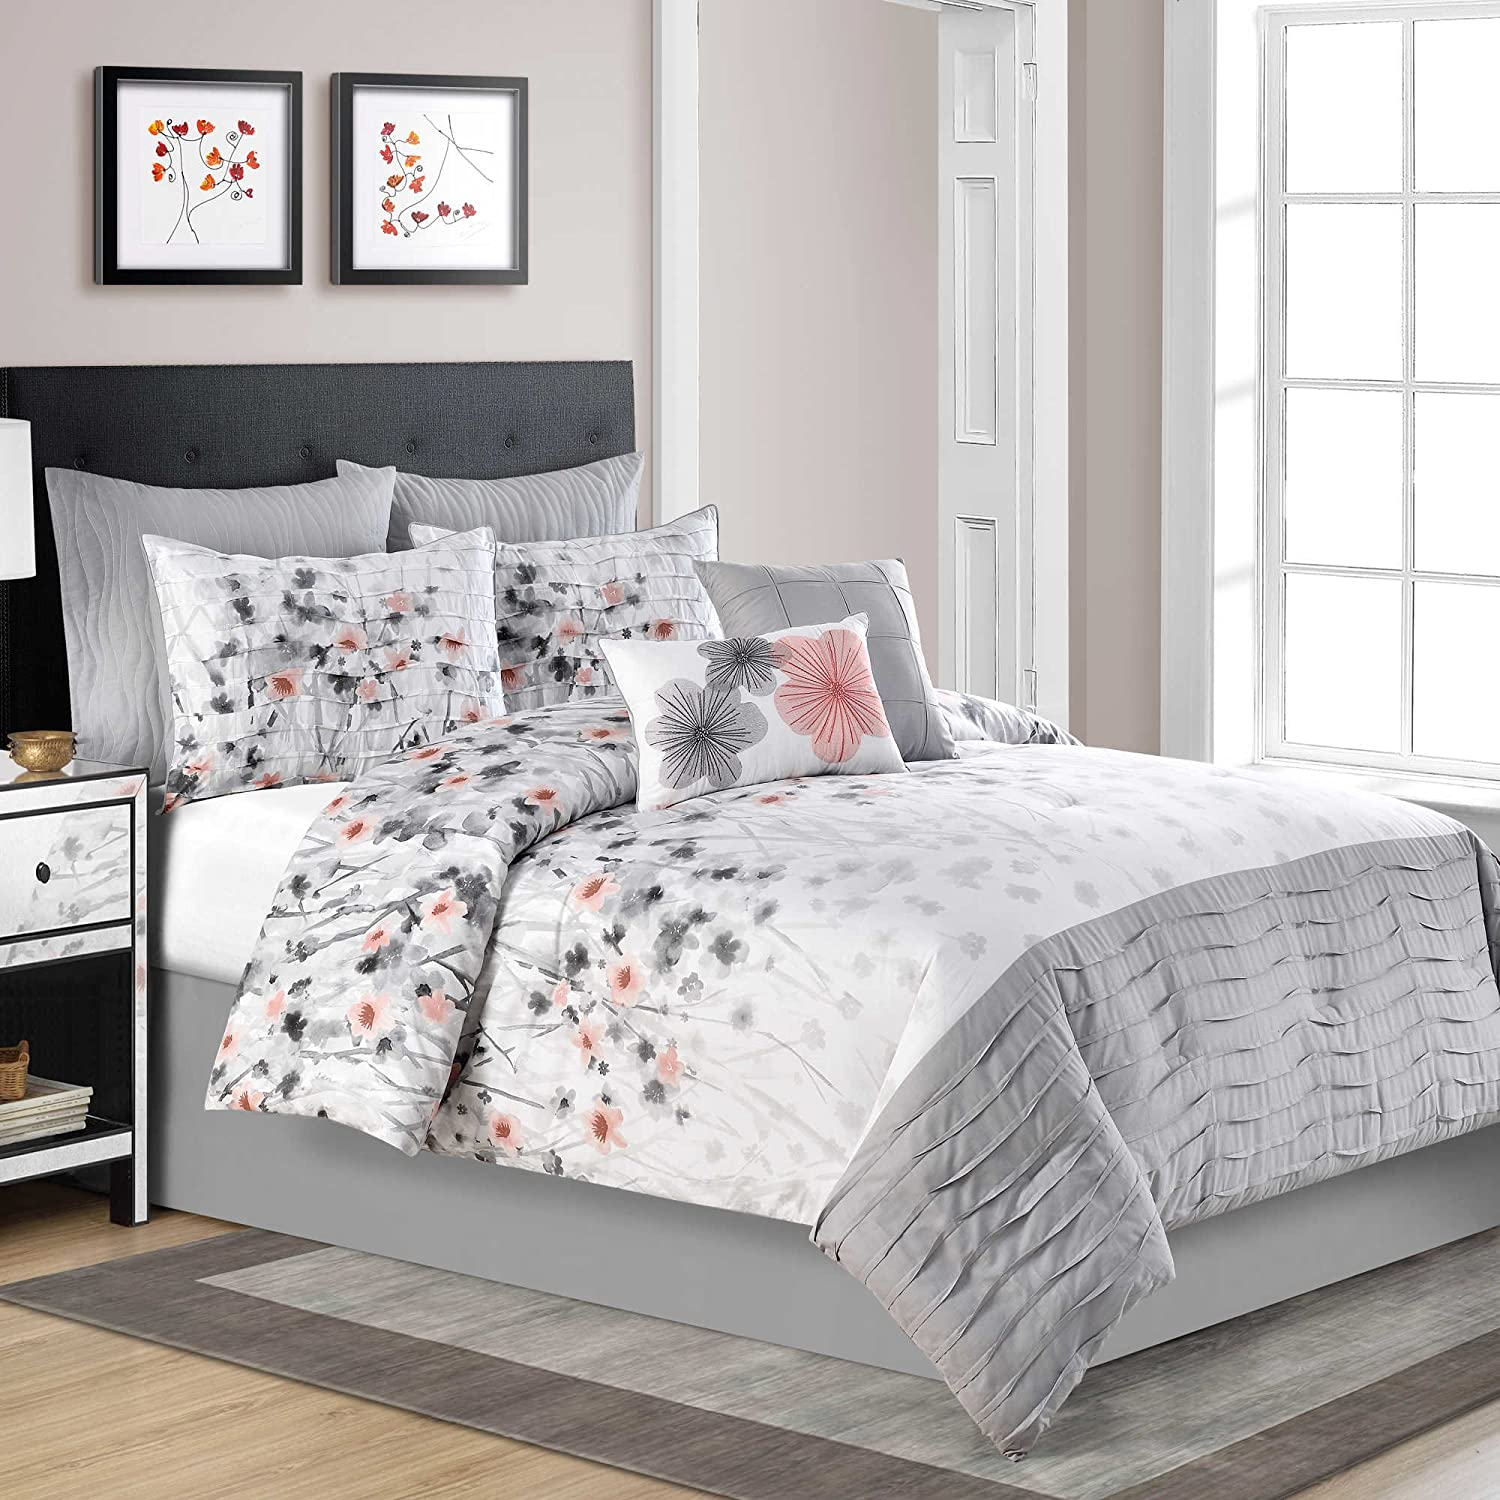 black vermont ideas home set and delightful king amazon yellow whitesilver size com gray extraordinary comforter shocking coral blue chic images dark bedding bed queen sets piece grey